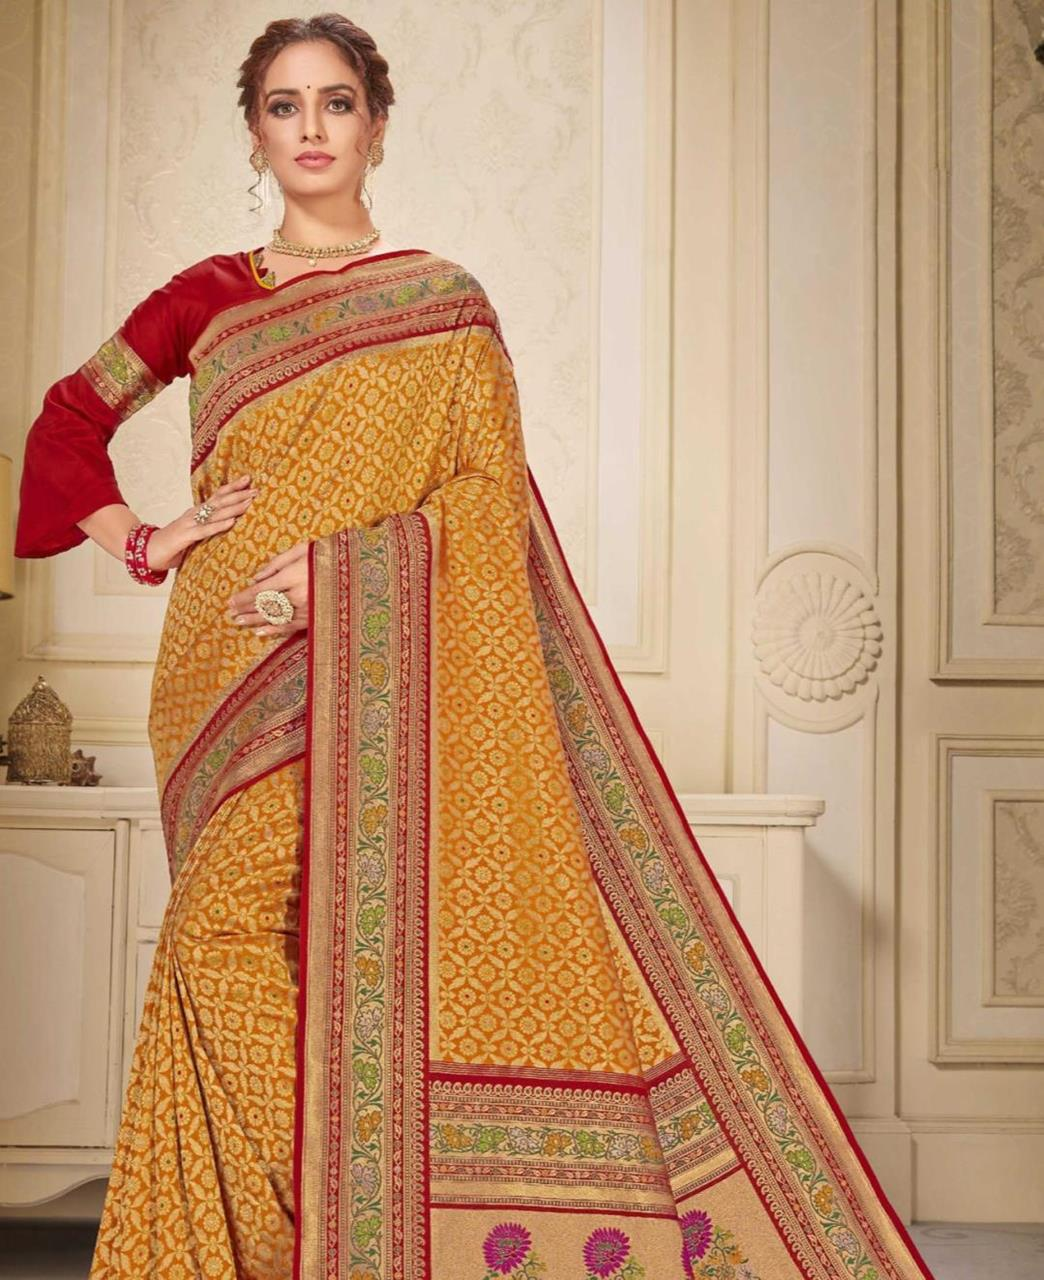 Printed Silk Saree in Musterd